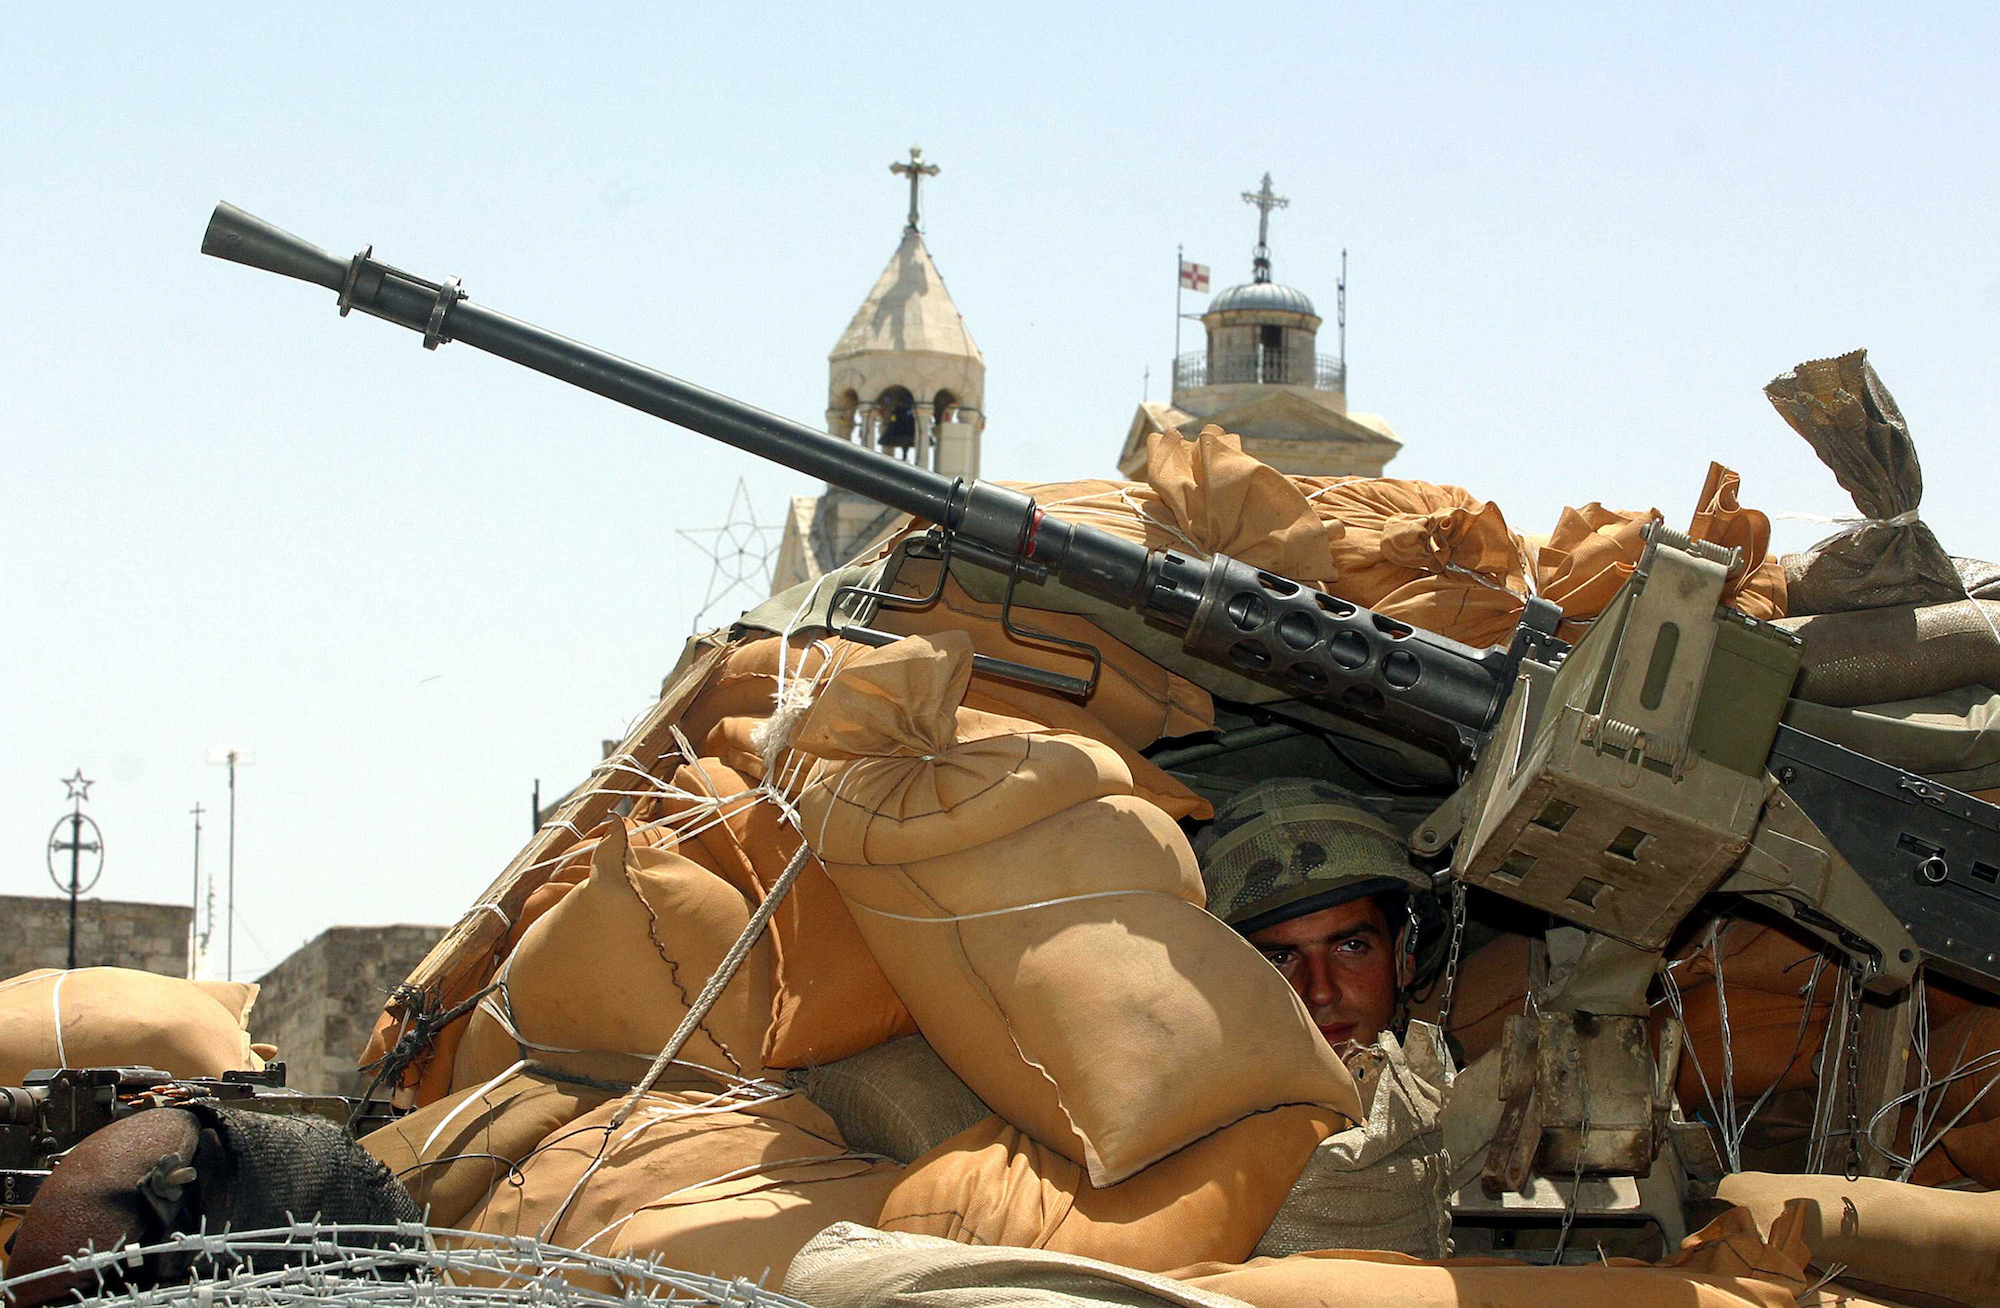 An Israeli soldier in an armored personnel carrier in front of the Church of Nativity in the biblical city of Bethlehem, where the Christian faith holds that Jesus Christ was born. Israeli forces entered the city in May 2002 in a wide-scale operation to arrest Palestinian militants. Bethlehem, May 2002 (Photo by Heidi Levine)